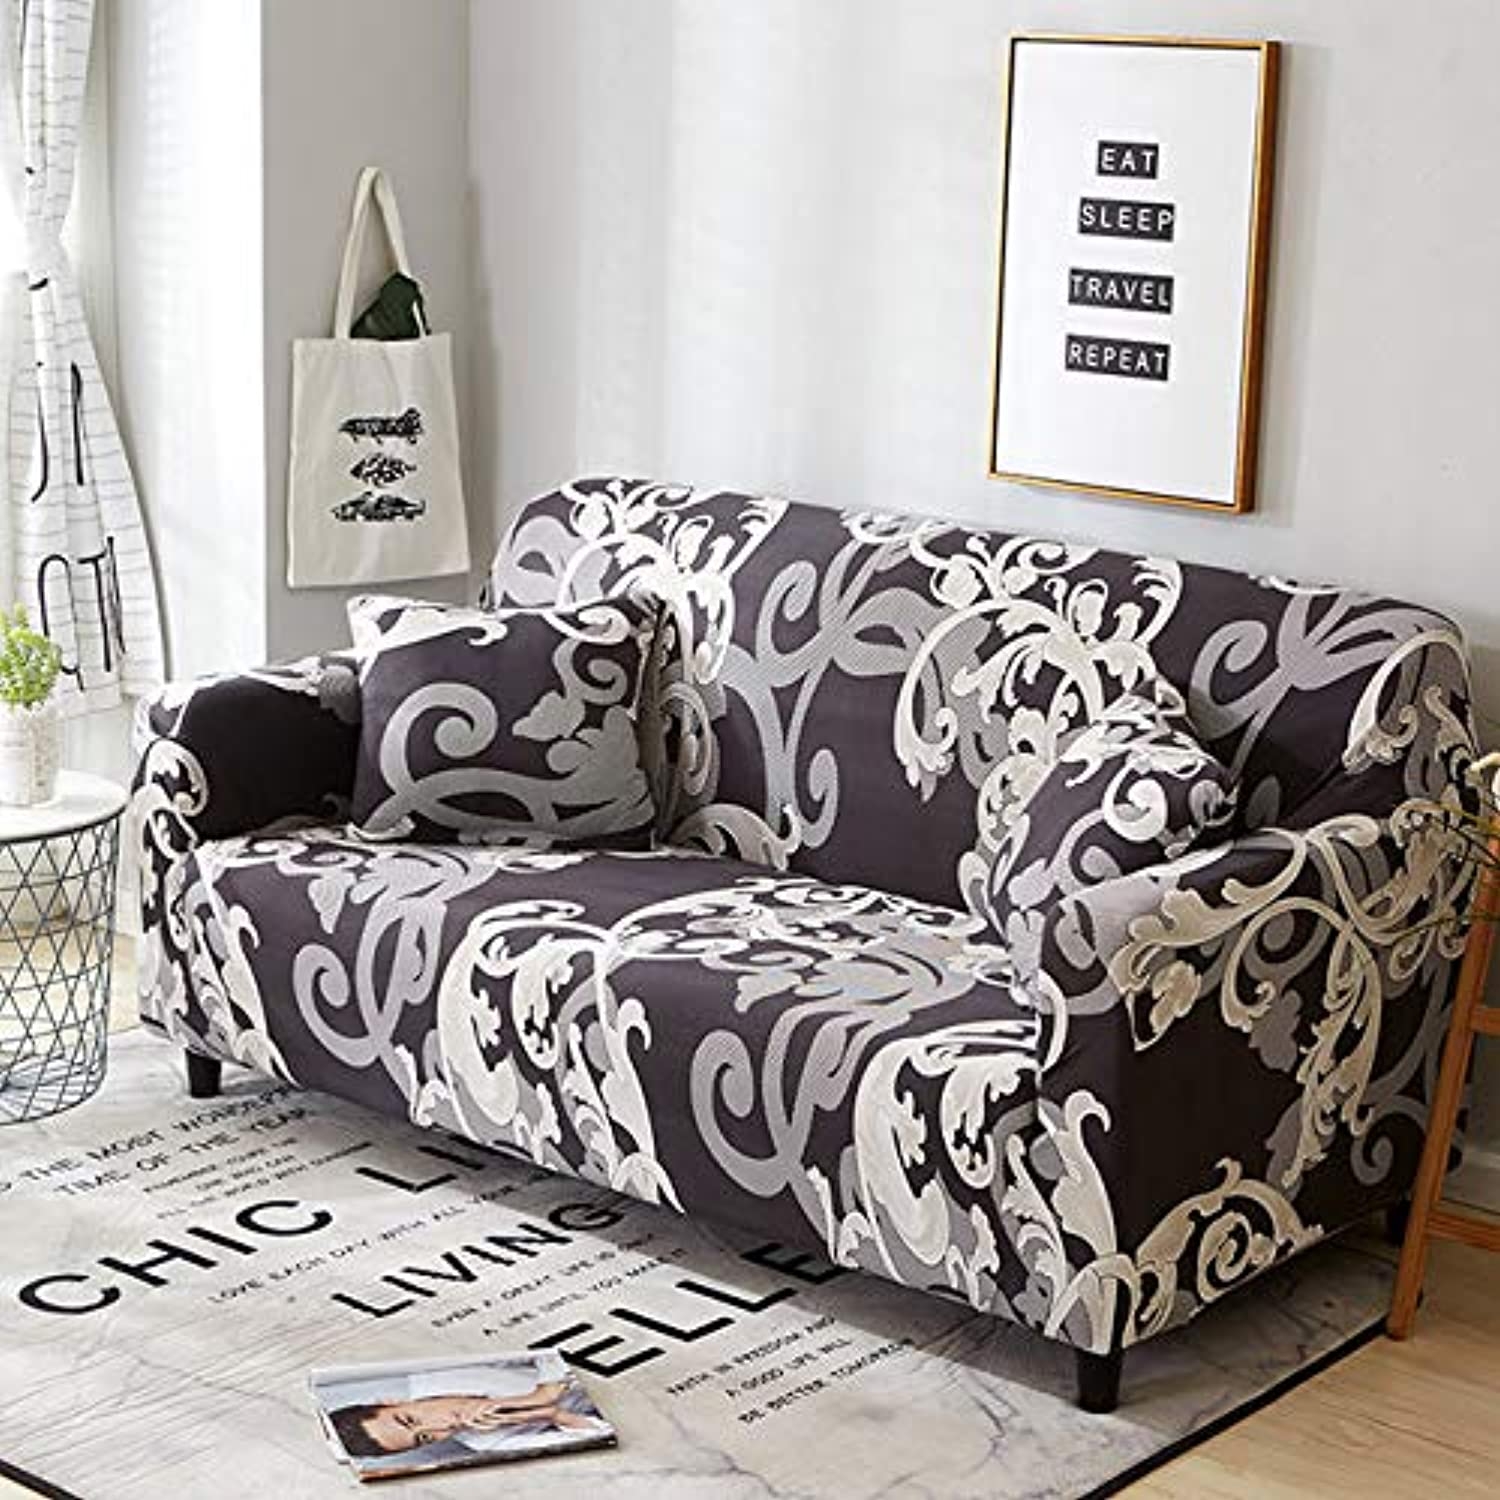 Stretch Sofa Cover All-Inclusive Elastic Seat Couch Cover for Living Room Furniture Slipcovers fundas de sillones envio Gratis   color 9, 2-Seater 145-185cm